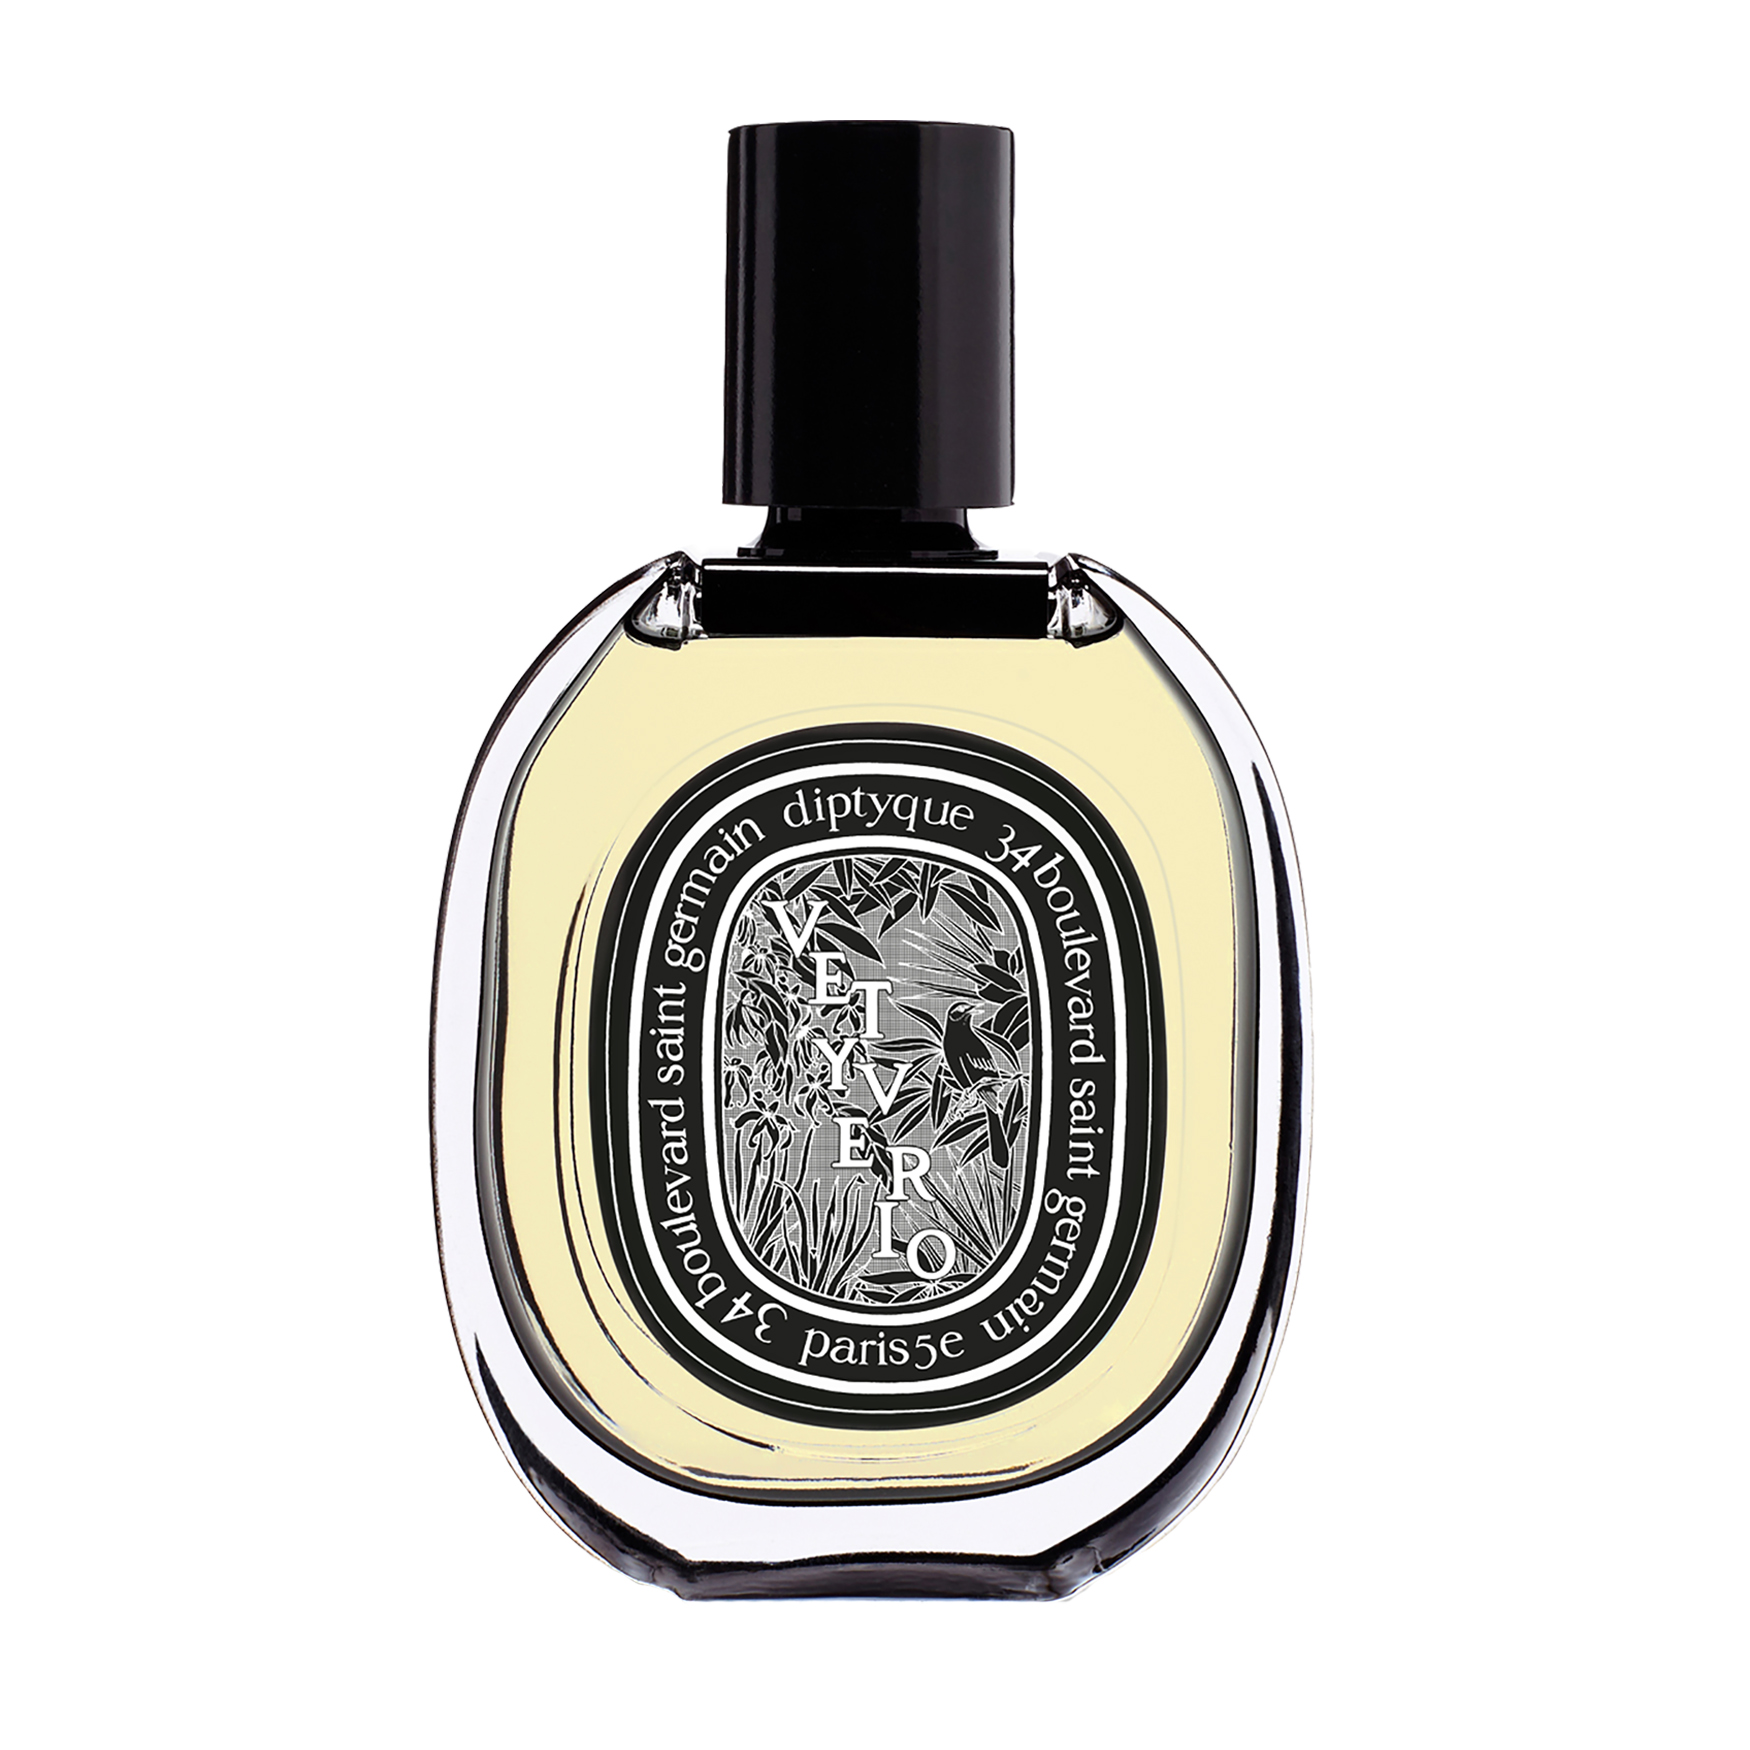 Buy vetyverio eau de toilette by diptyque online for Buy diptyque candles online